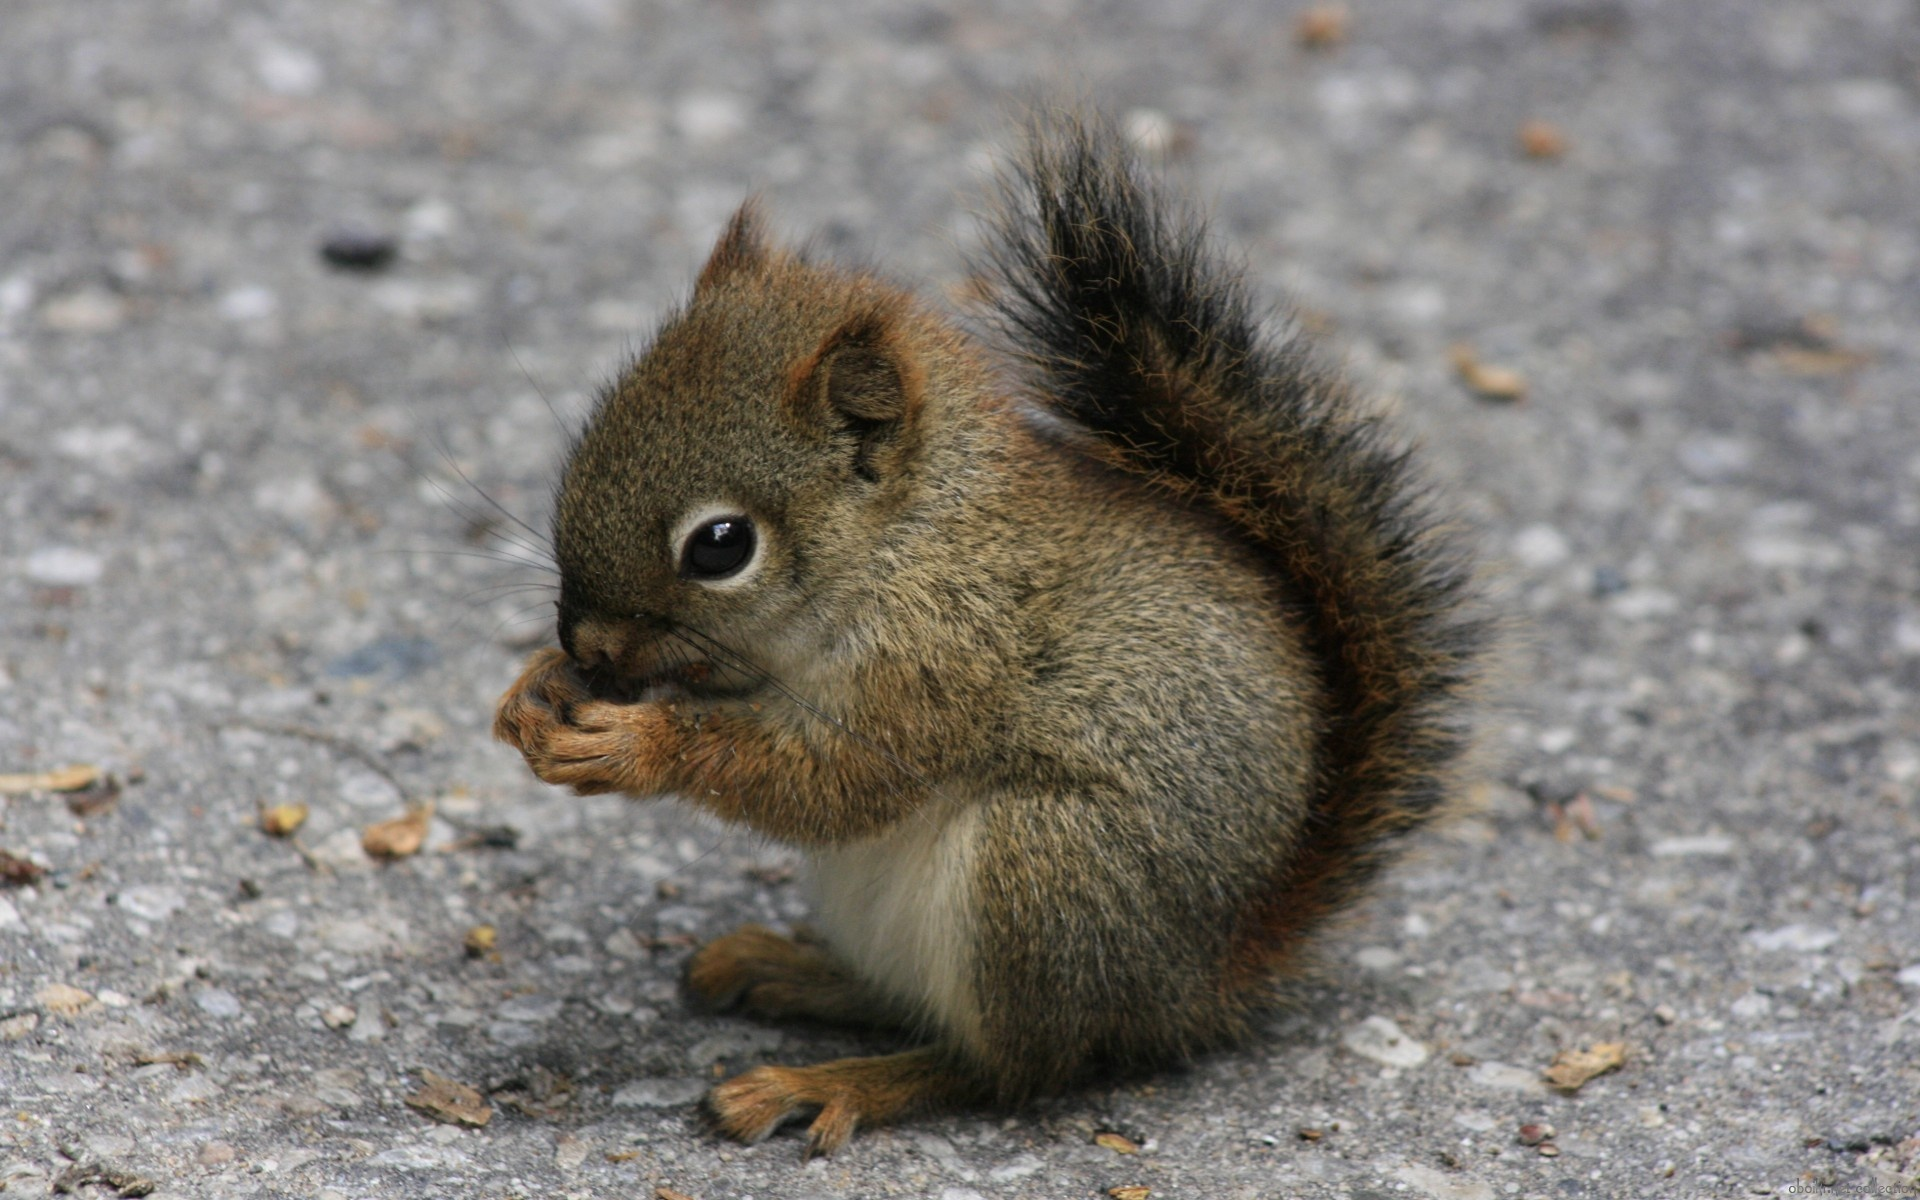 Adorable Little Squirrel wallpaper